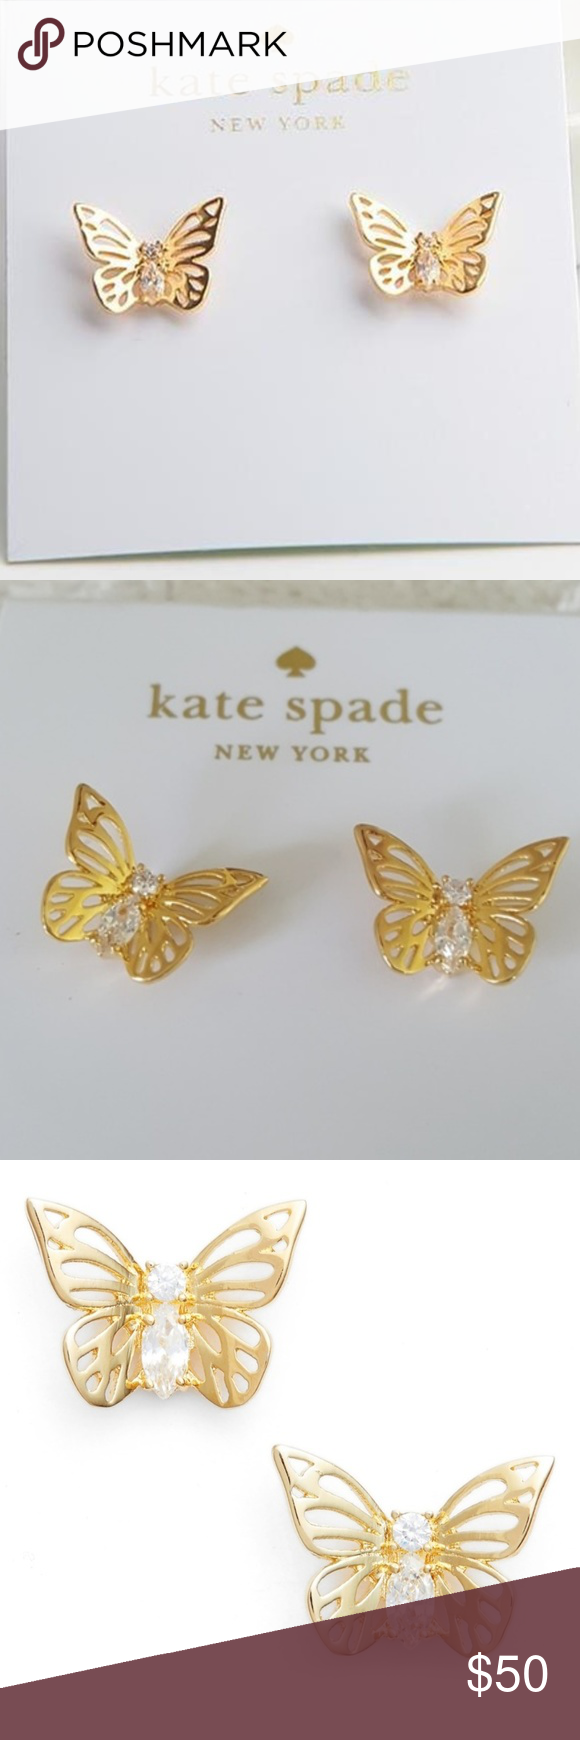 25541a92a NWT Kate Spade Social Butterfly Earrings Kate Spade Social Butterfly  Earrings New with tags Social Butterfly